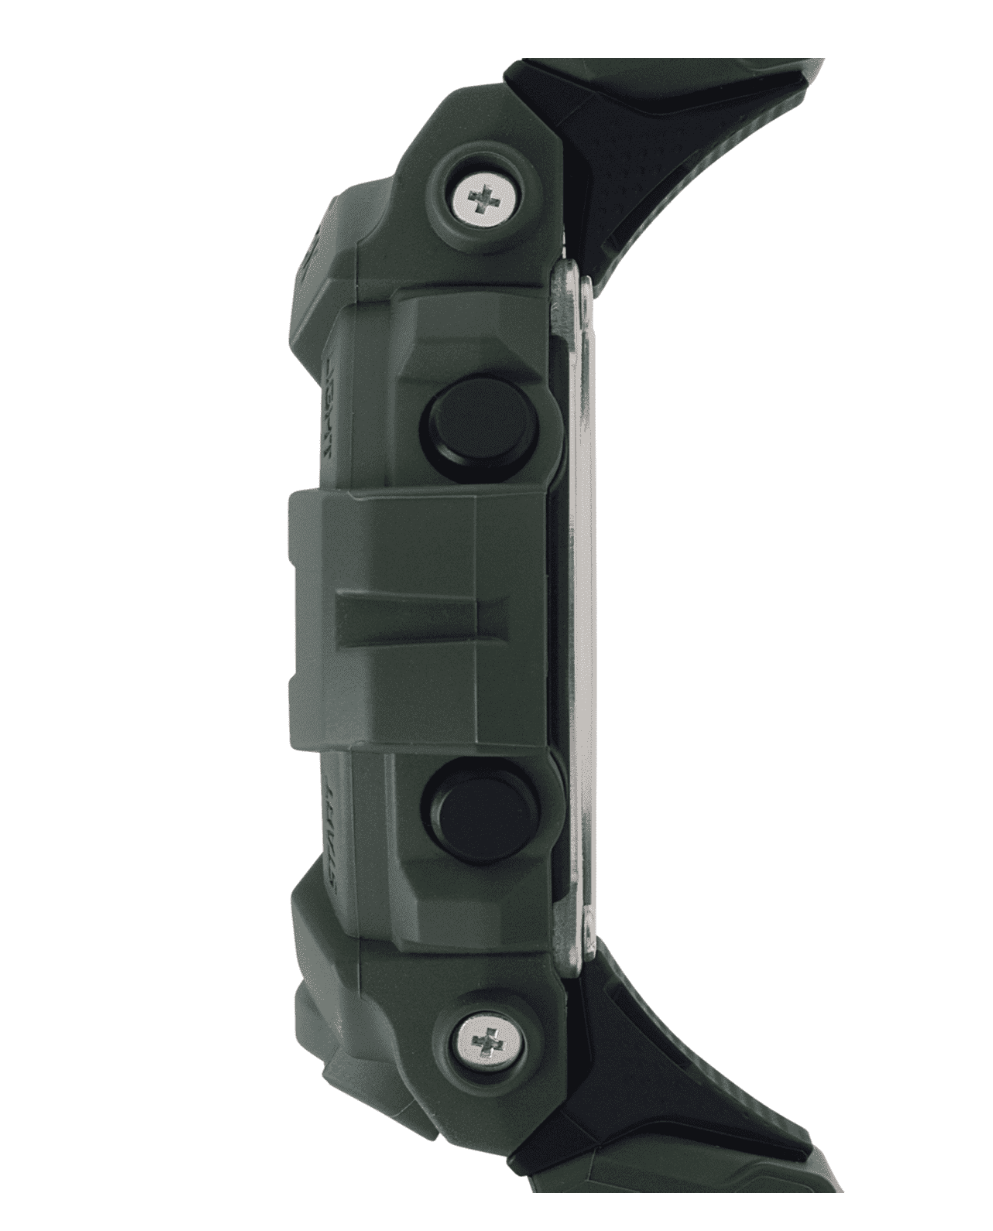 GBD800UC-3 G-Shock by Casio Green Bluetooth Connectivity Mineral Glass, Step Tracker, Side View